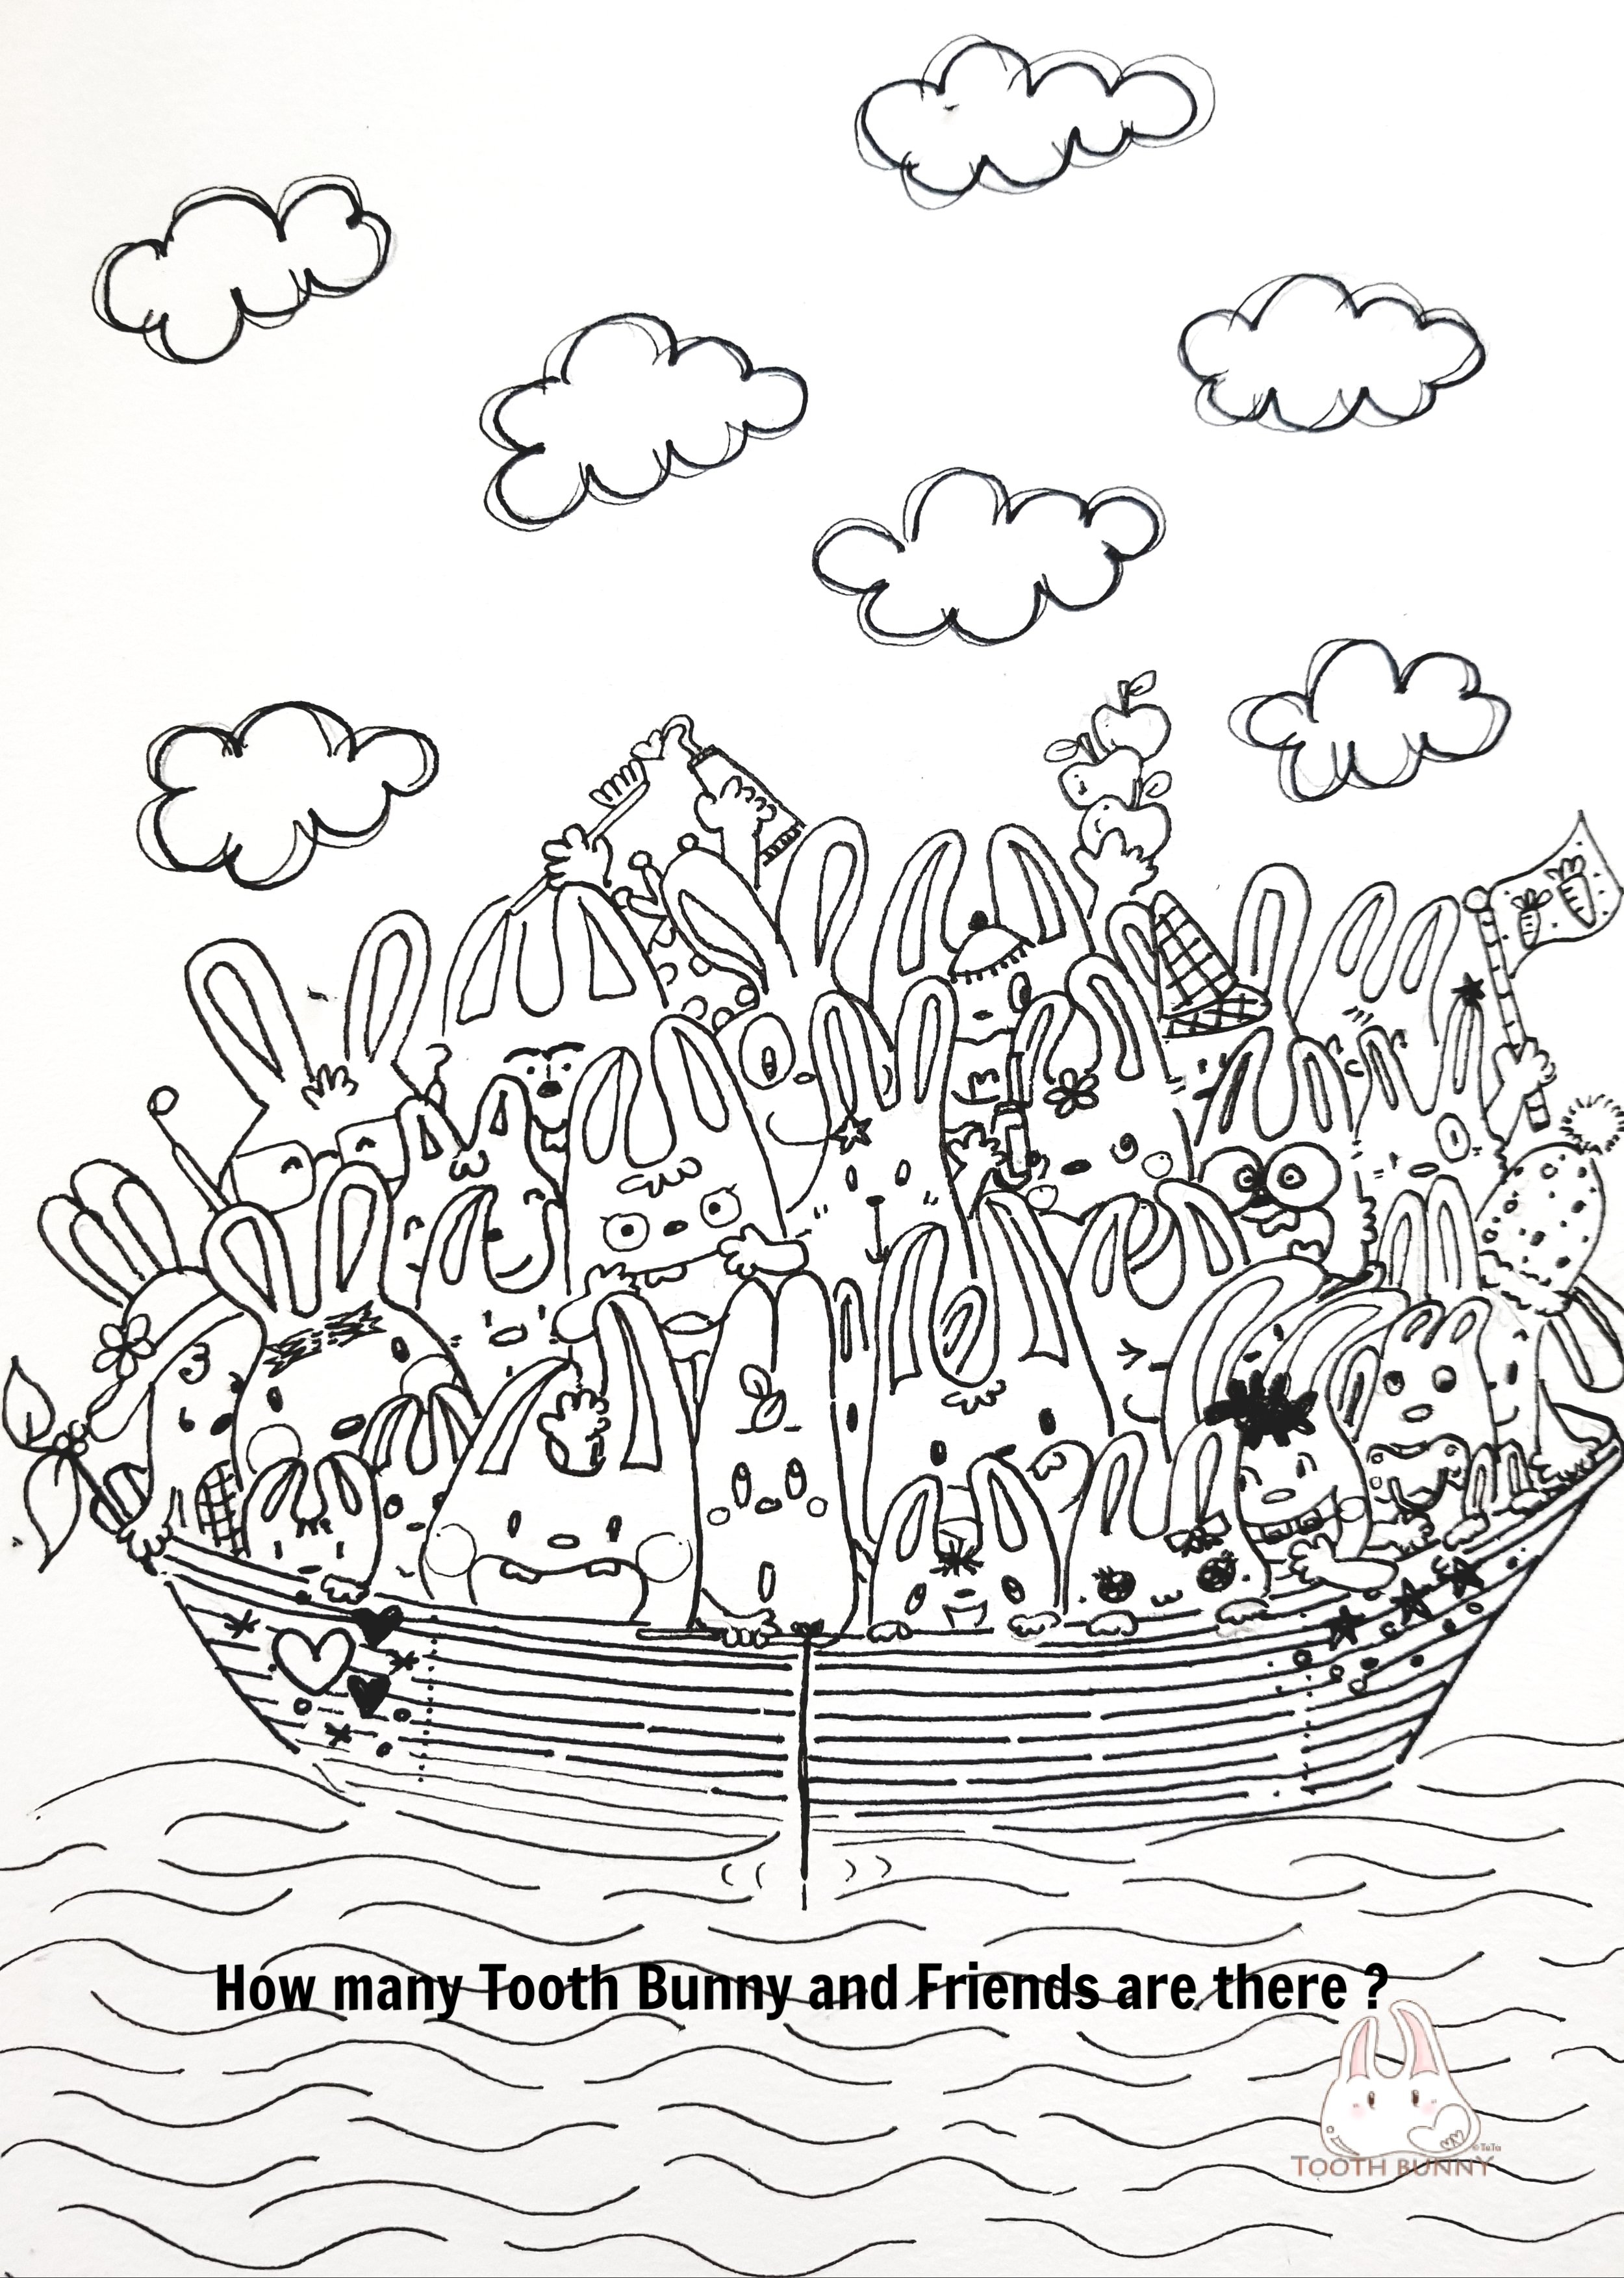 Colour In and Count How Many Tooth Bunny and Friends are there?